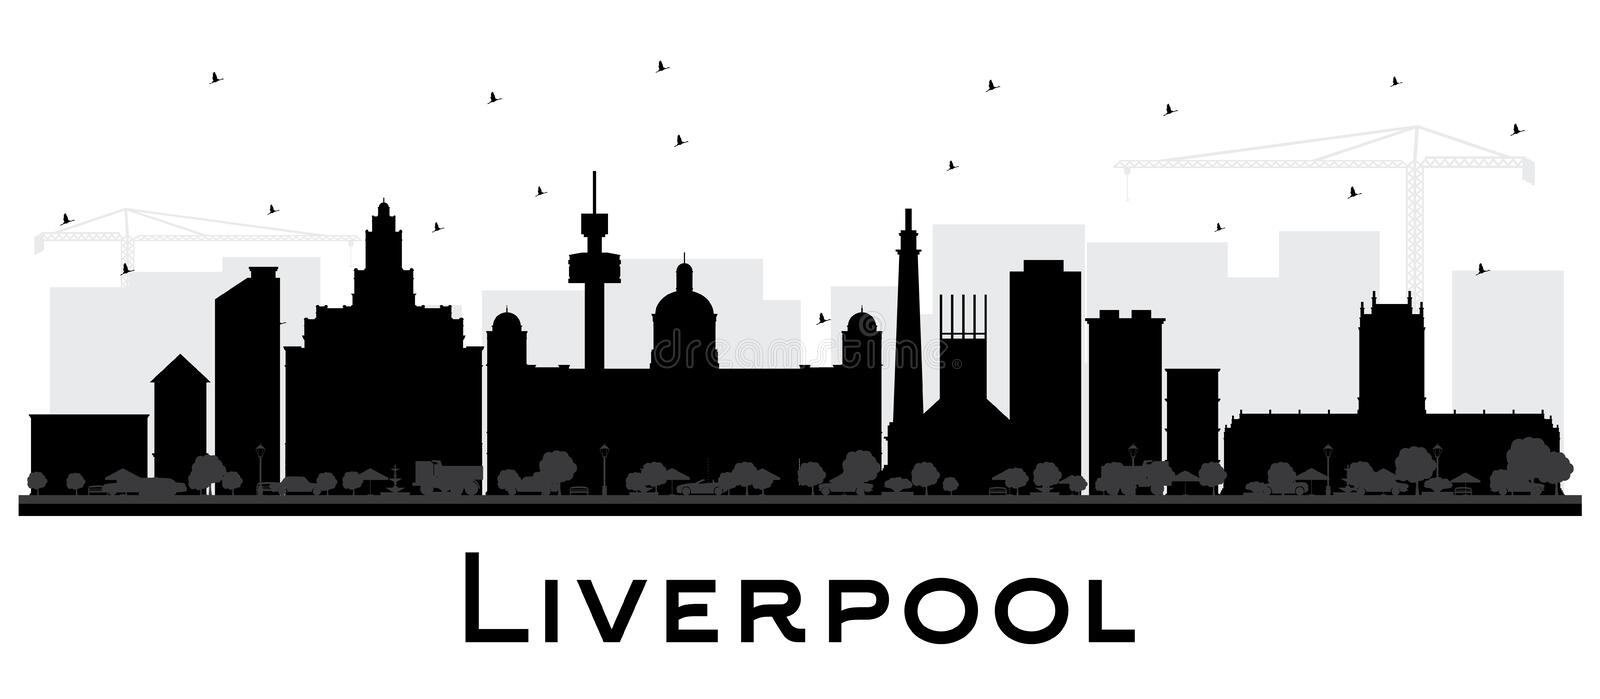 Liverpool City Skyline Silhouette with Black Buildings Isolated. On White. Vector Illustration. Business Travel and Tourism Concept with Historic Architecture royalty free illustration